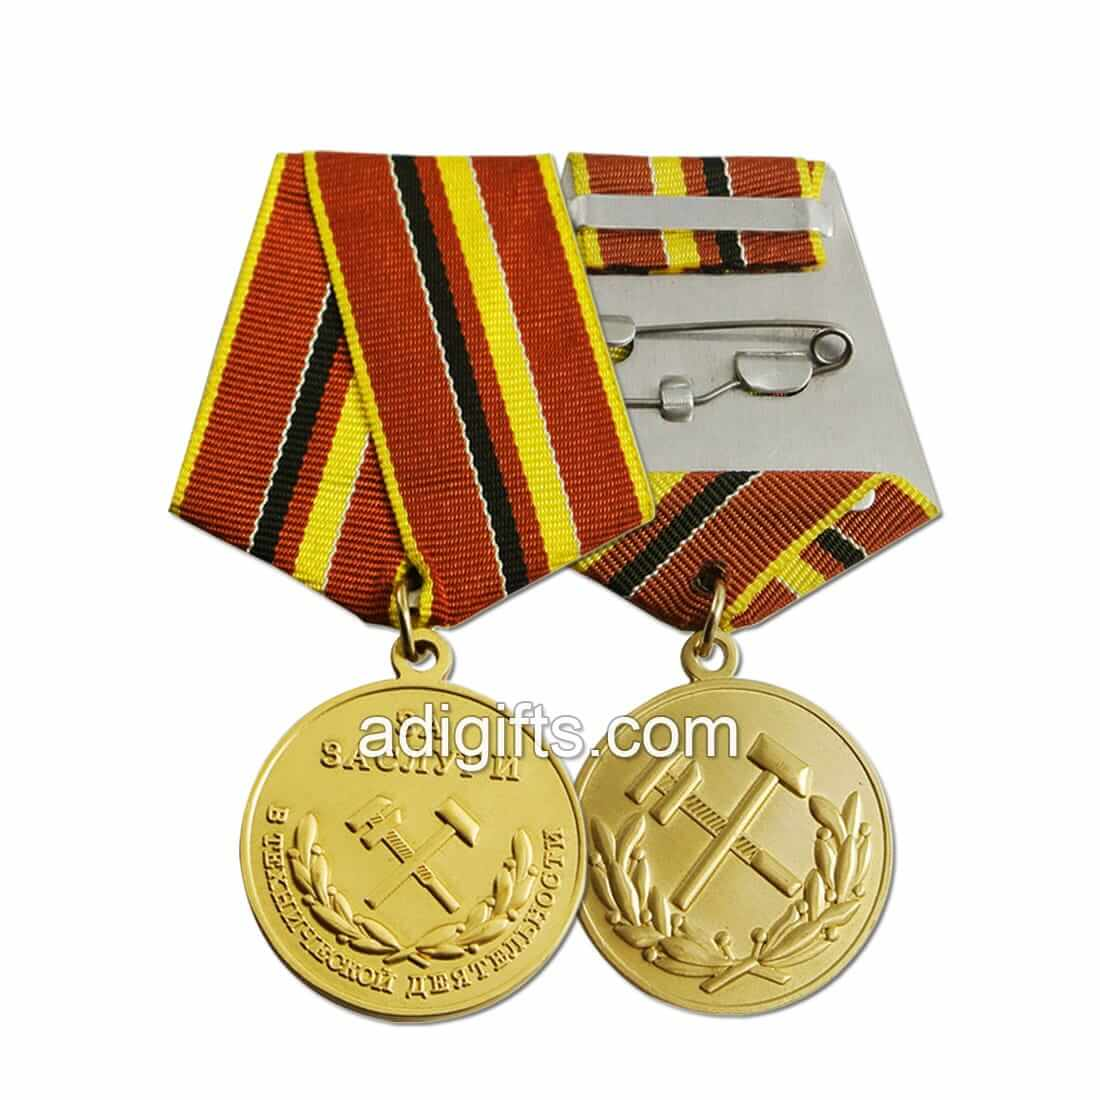 New design custom replacement military medals